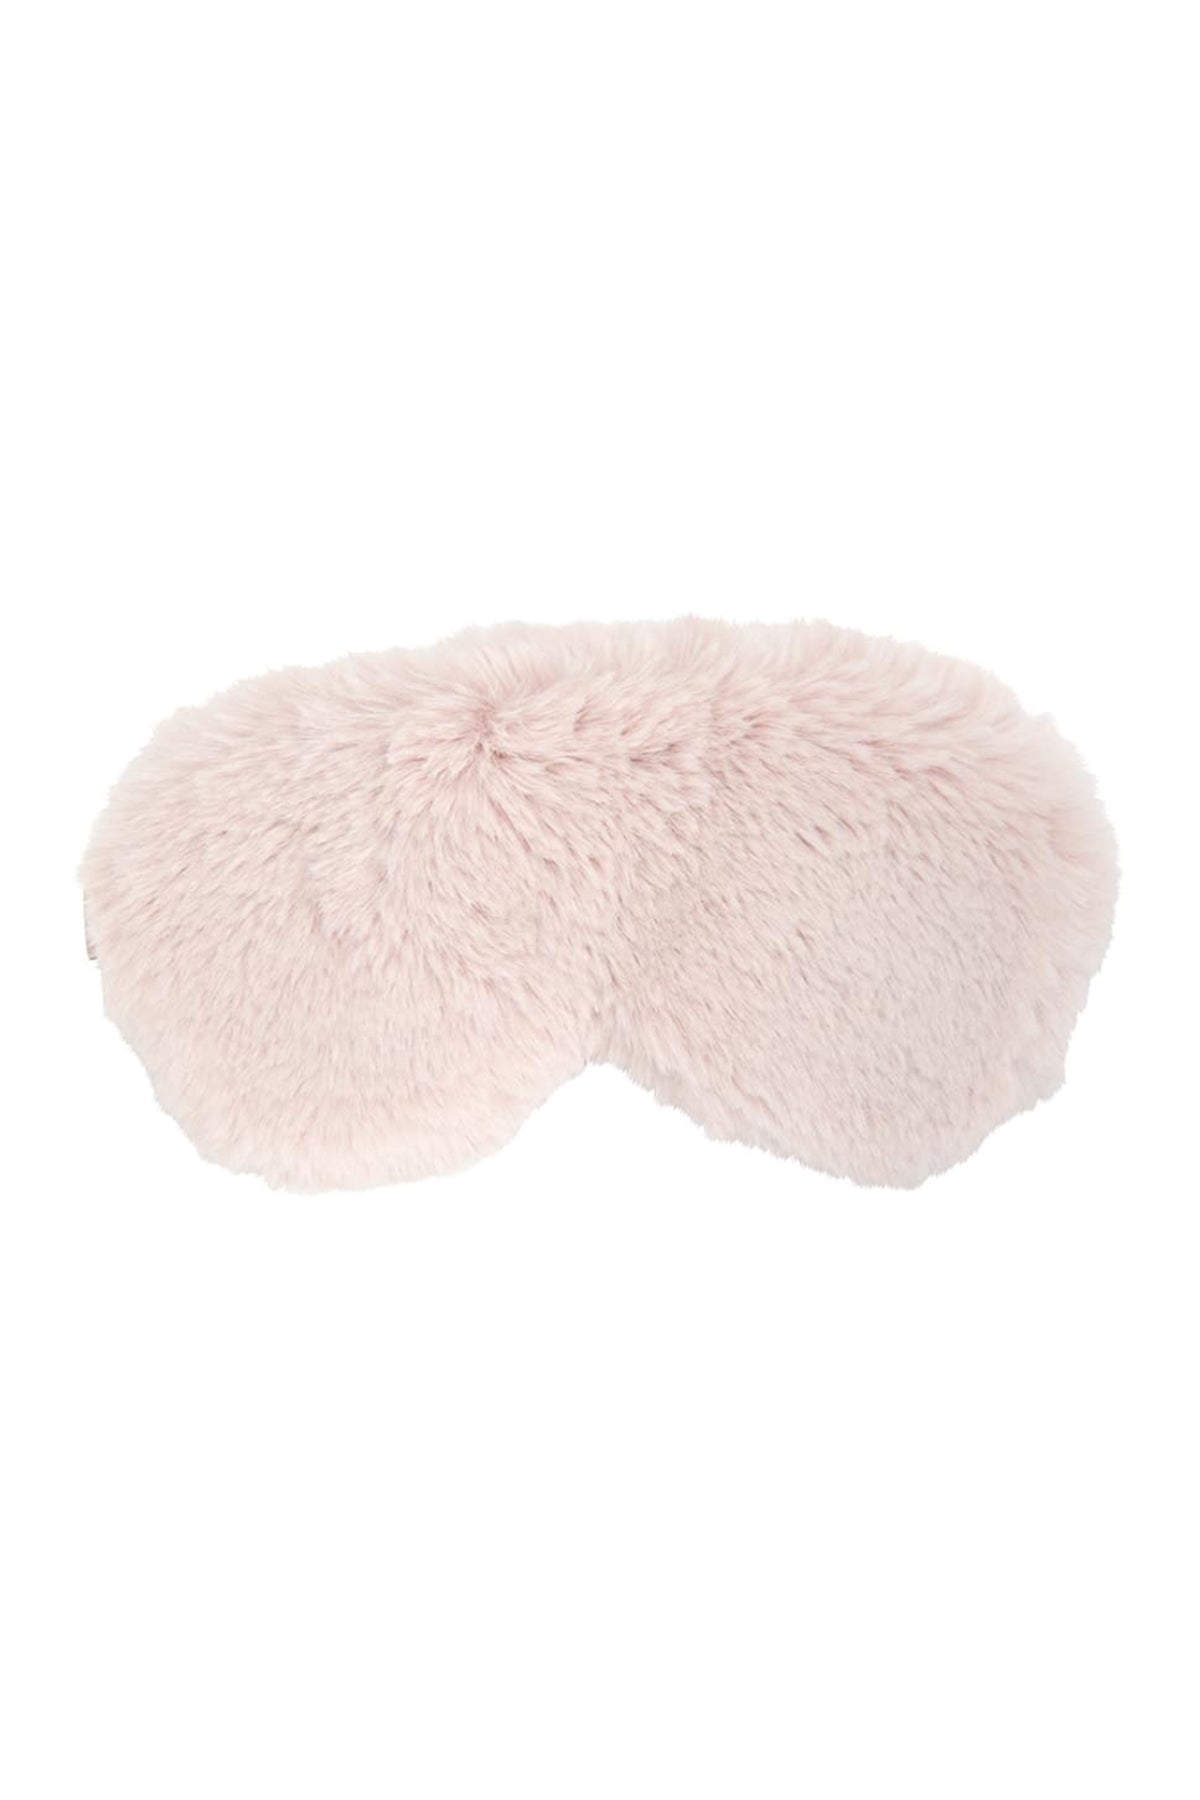 eye mask cosy luxe pink